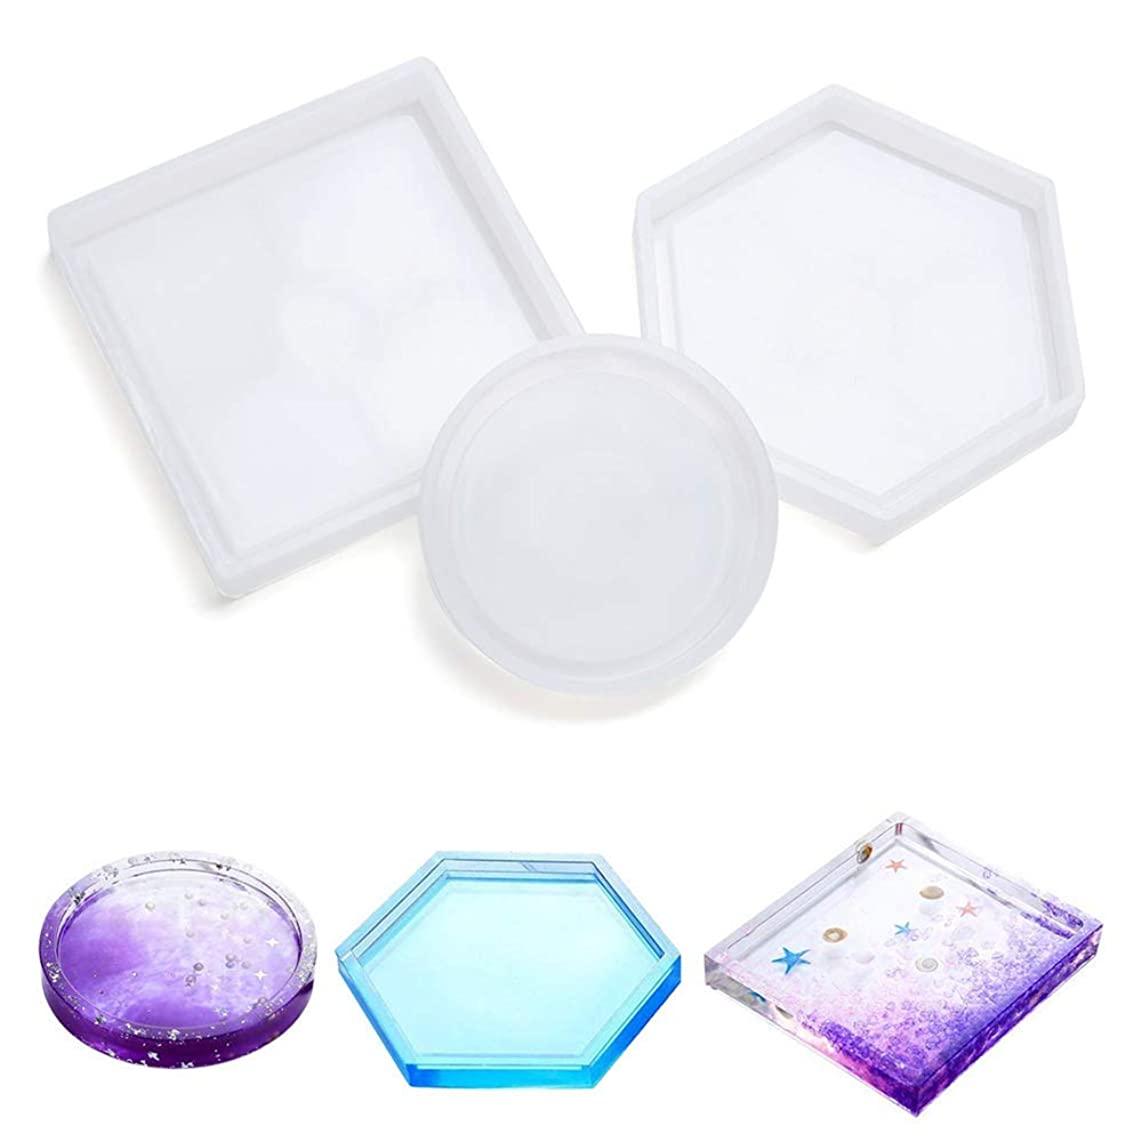 3 Pcs Silicone Coaster Molds for Resin Casting, DIY Hexagon Mold Coaster Bottom Bracket Prevents Deformation, Molds for Casting with Resin, Concrete, Cement(Round, Square, Hexagon)